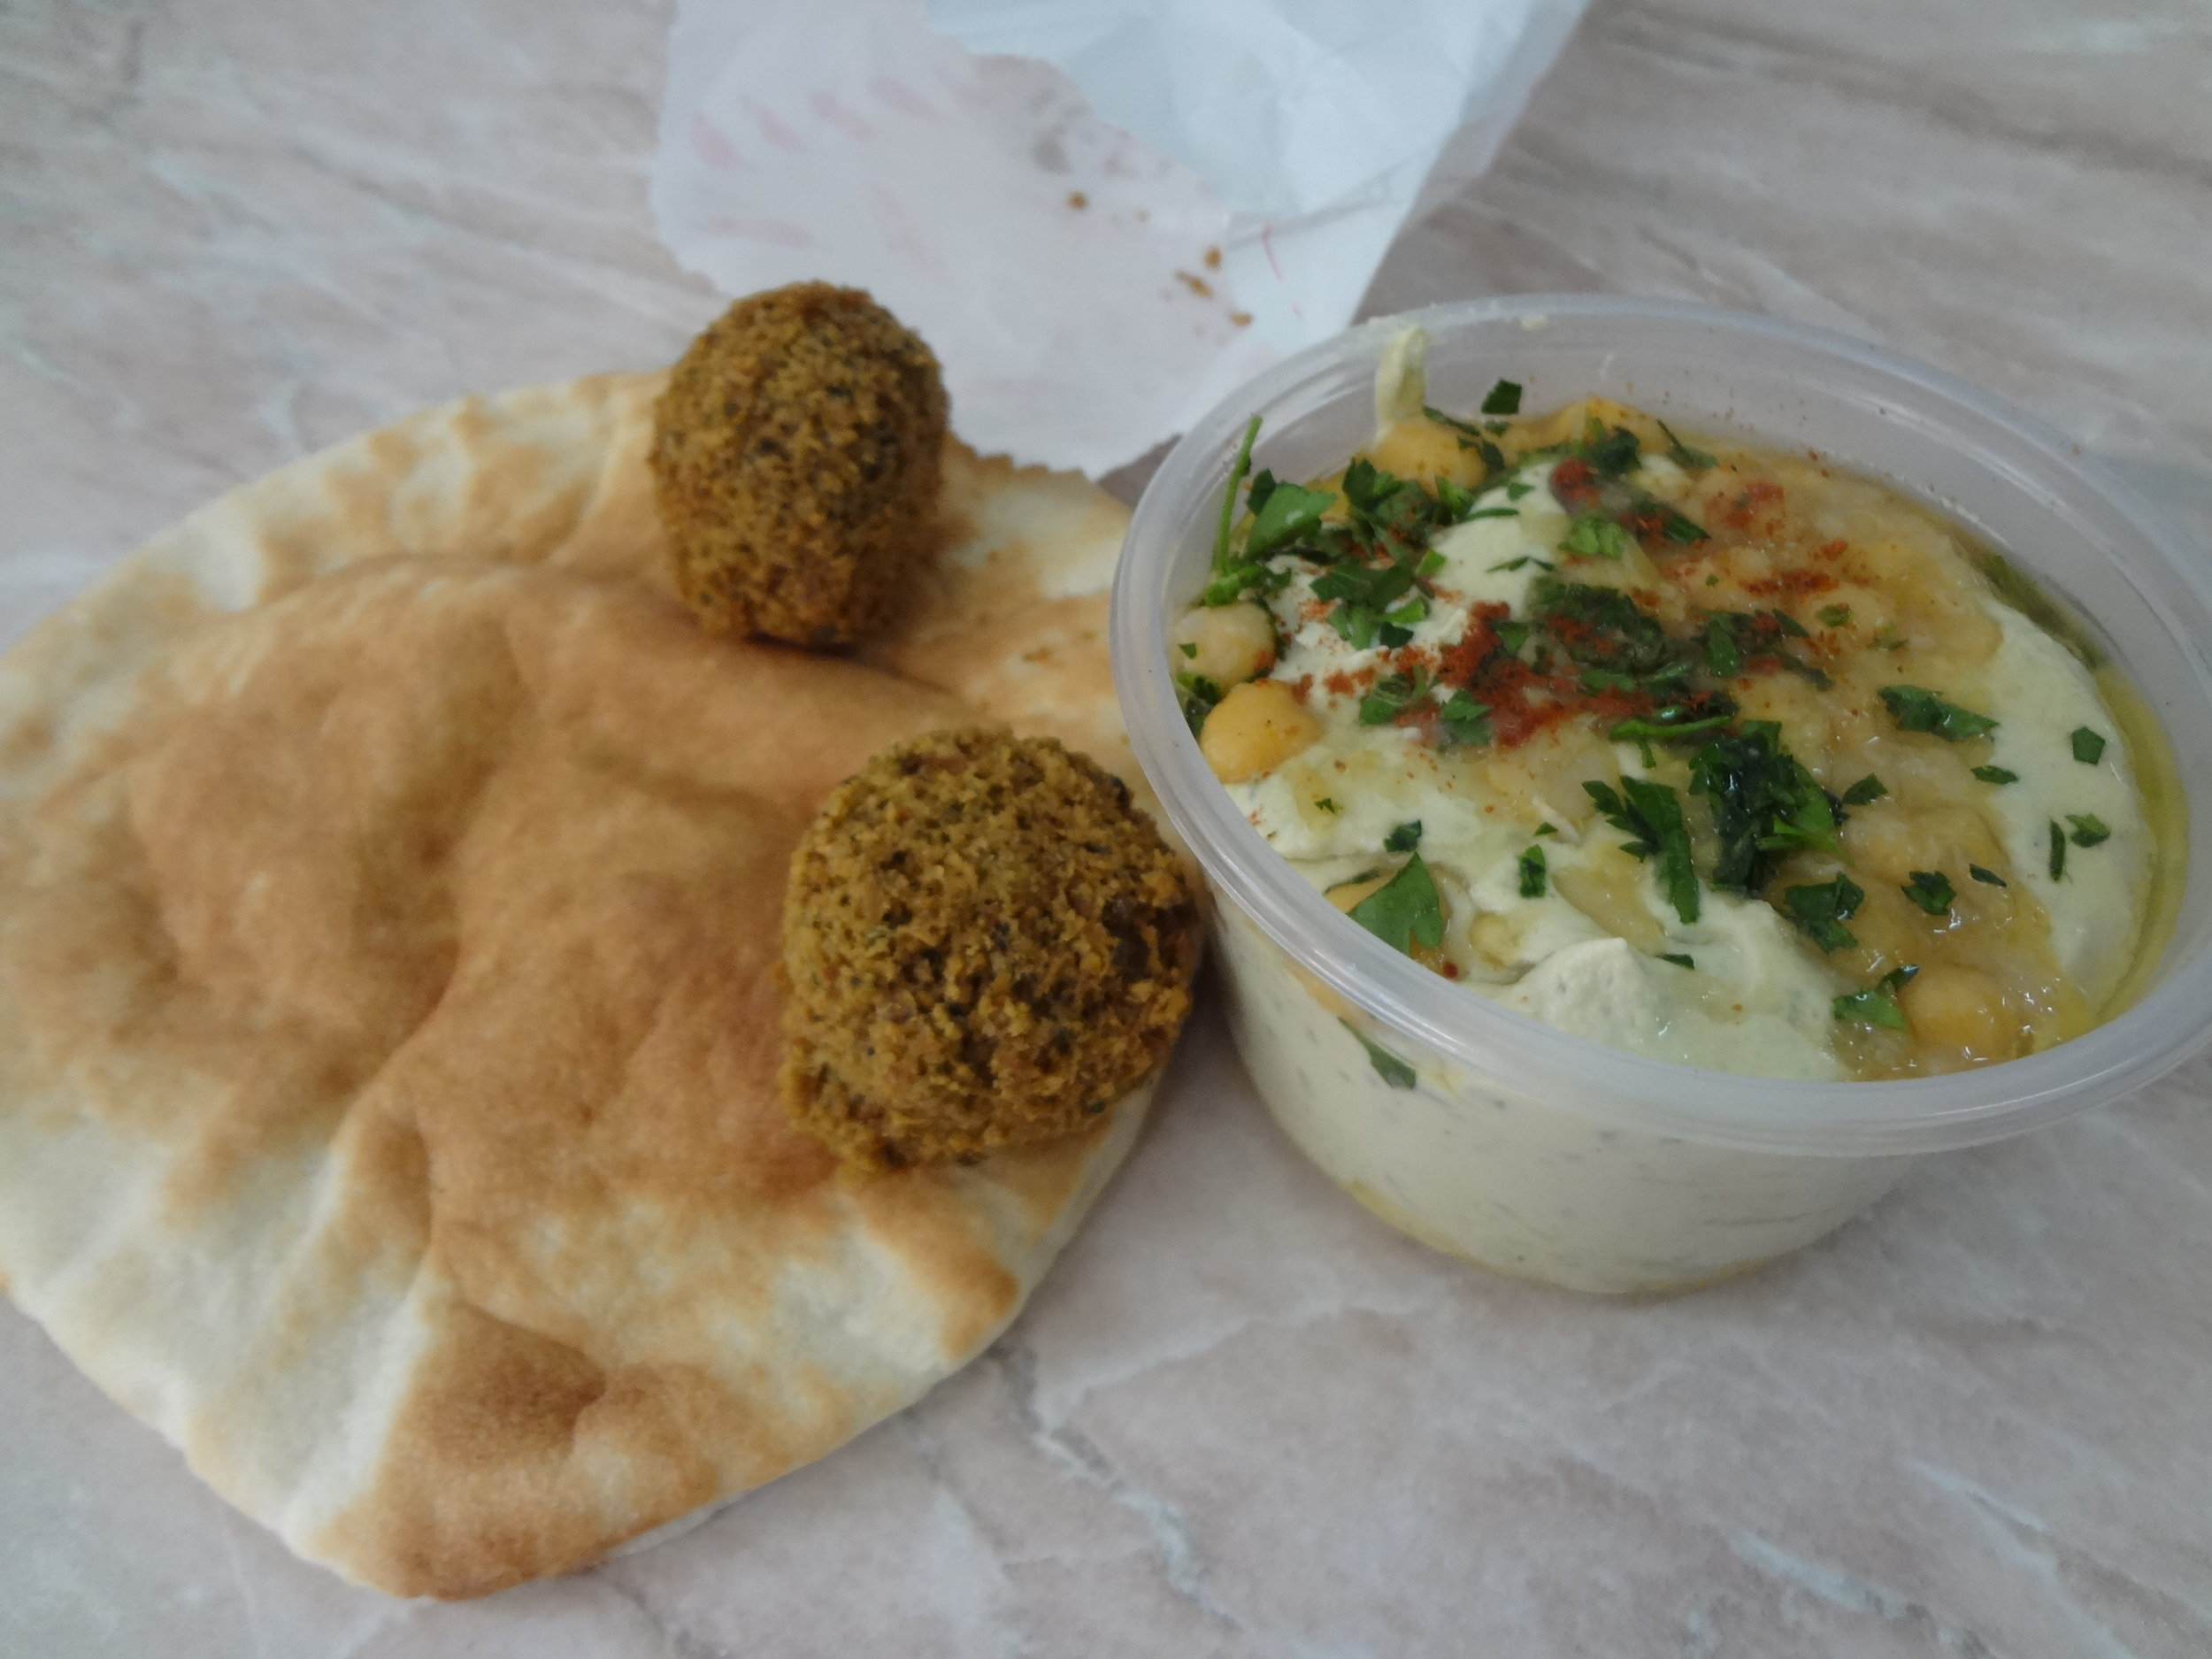 Plus falafel because if you have the opportunity to eat falafel, you should always take it